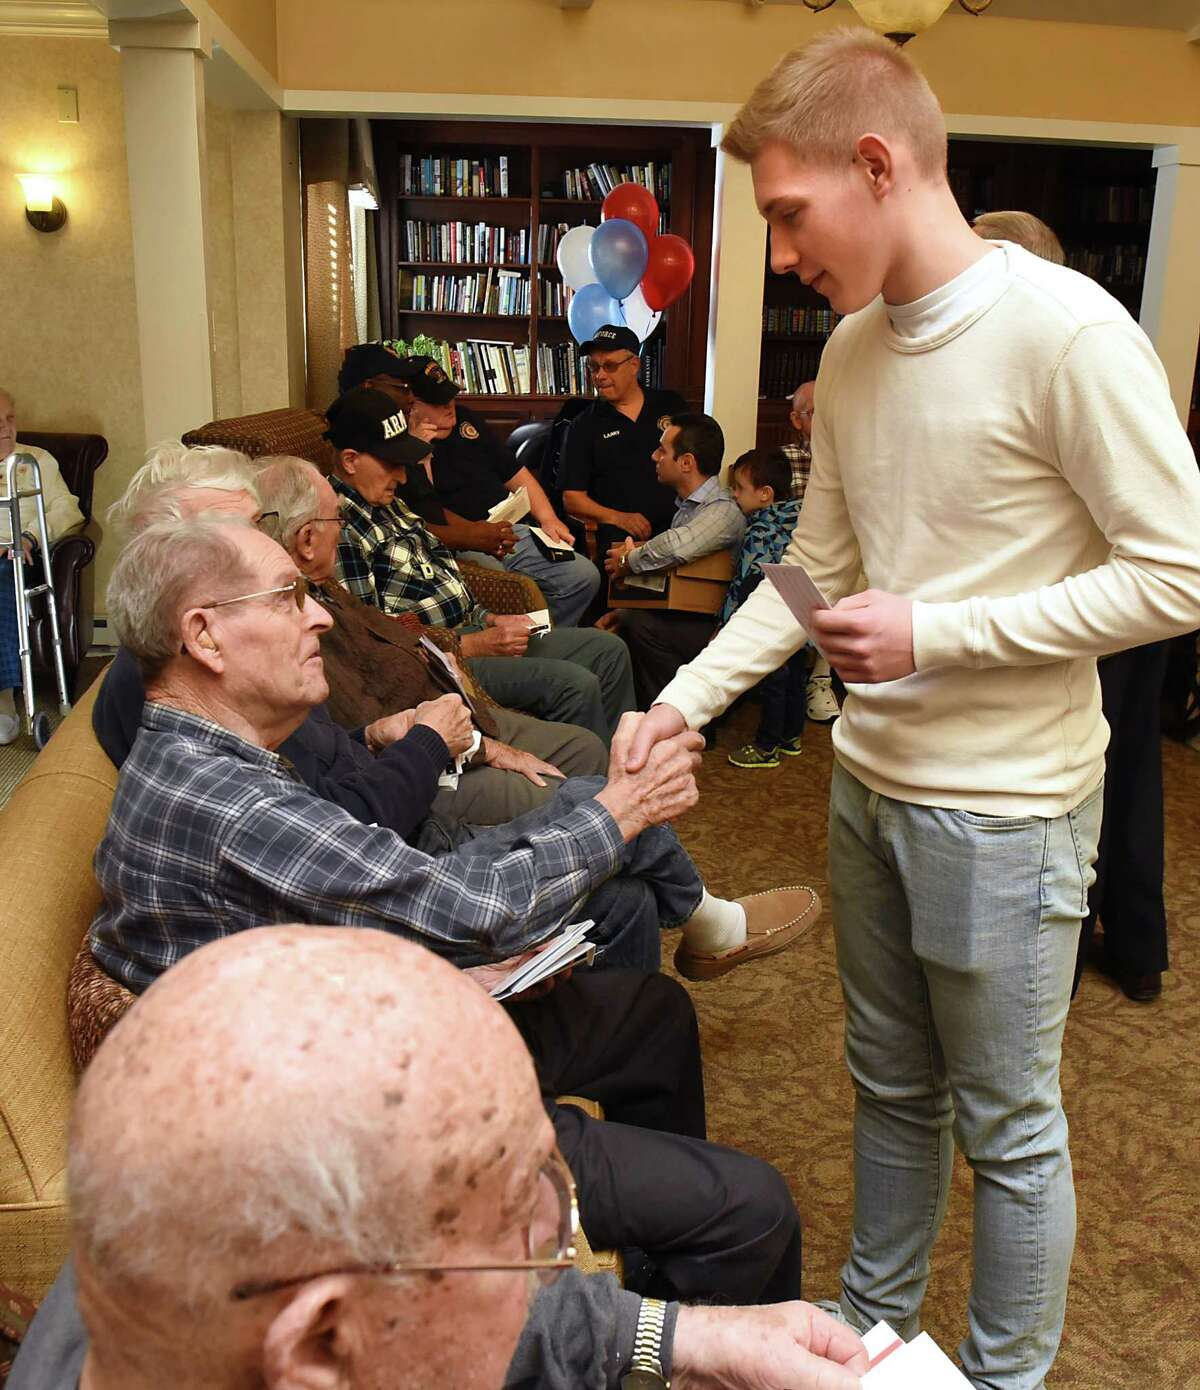 Josh Janack, 15, of Glenville gives a card to veteran Neal Martinis, 89, at the Atria Crossgate assistant living facility on Friday, Nov. 10, 2017 in Albany, N.Y. A group of children who are patients of local orthodontist Dr. Sergey Berenshteyn marked Veterans Day by presenting hundreds of thank you cards to veterans. (Lori Van Buren / Times Union)'